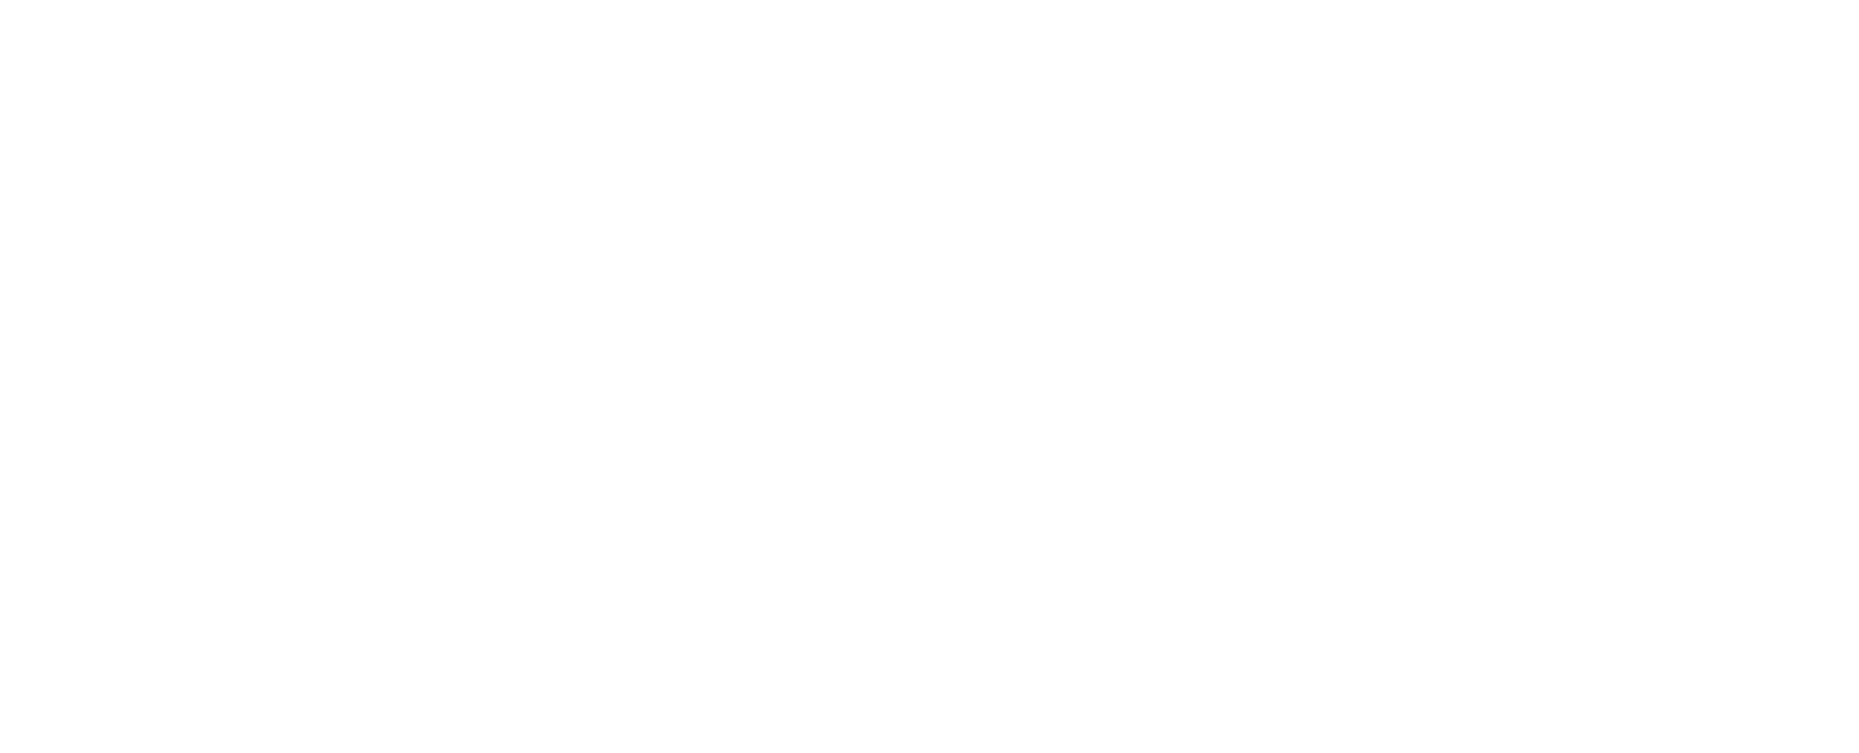 Welcome | World Leasing Yearbook